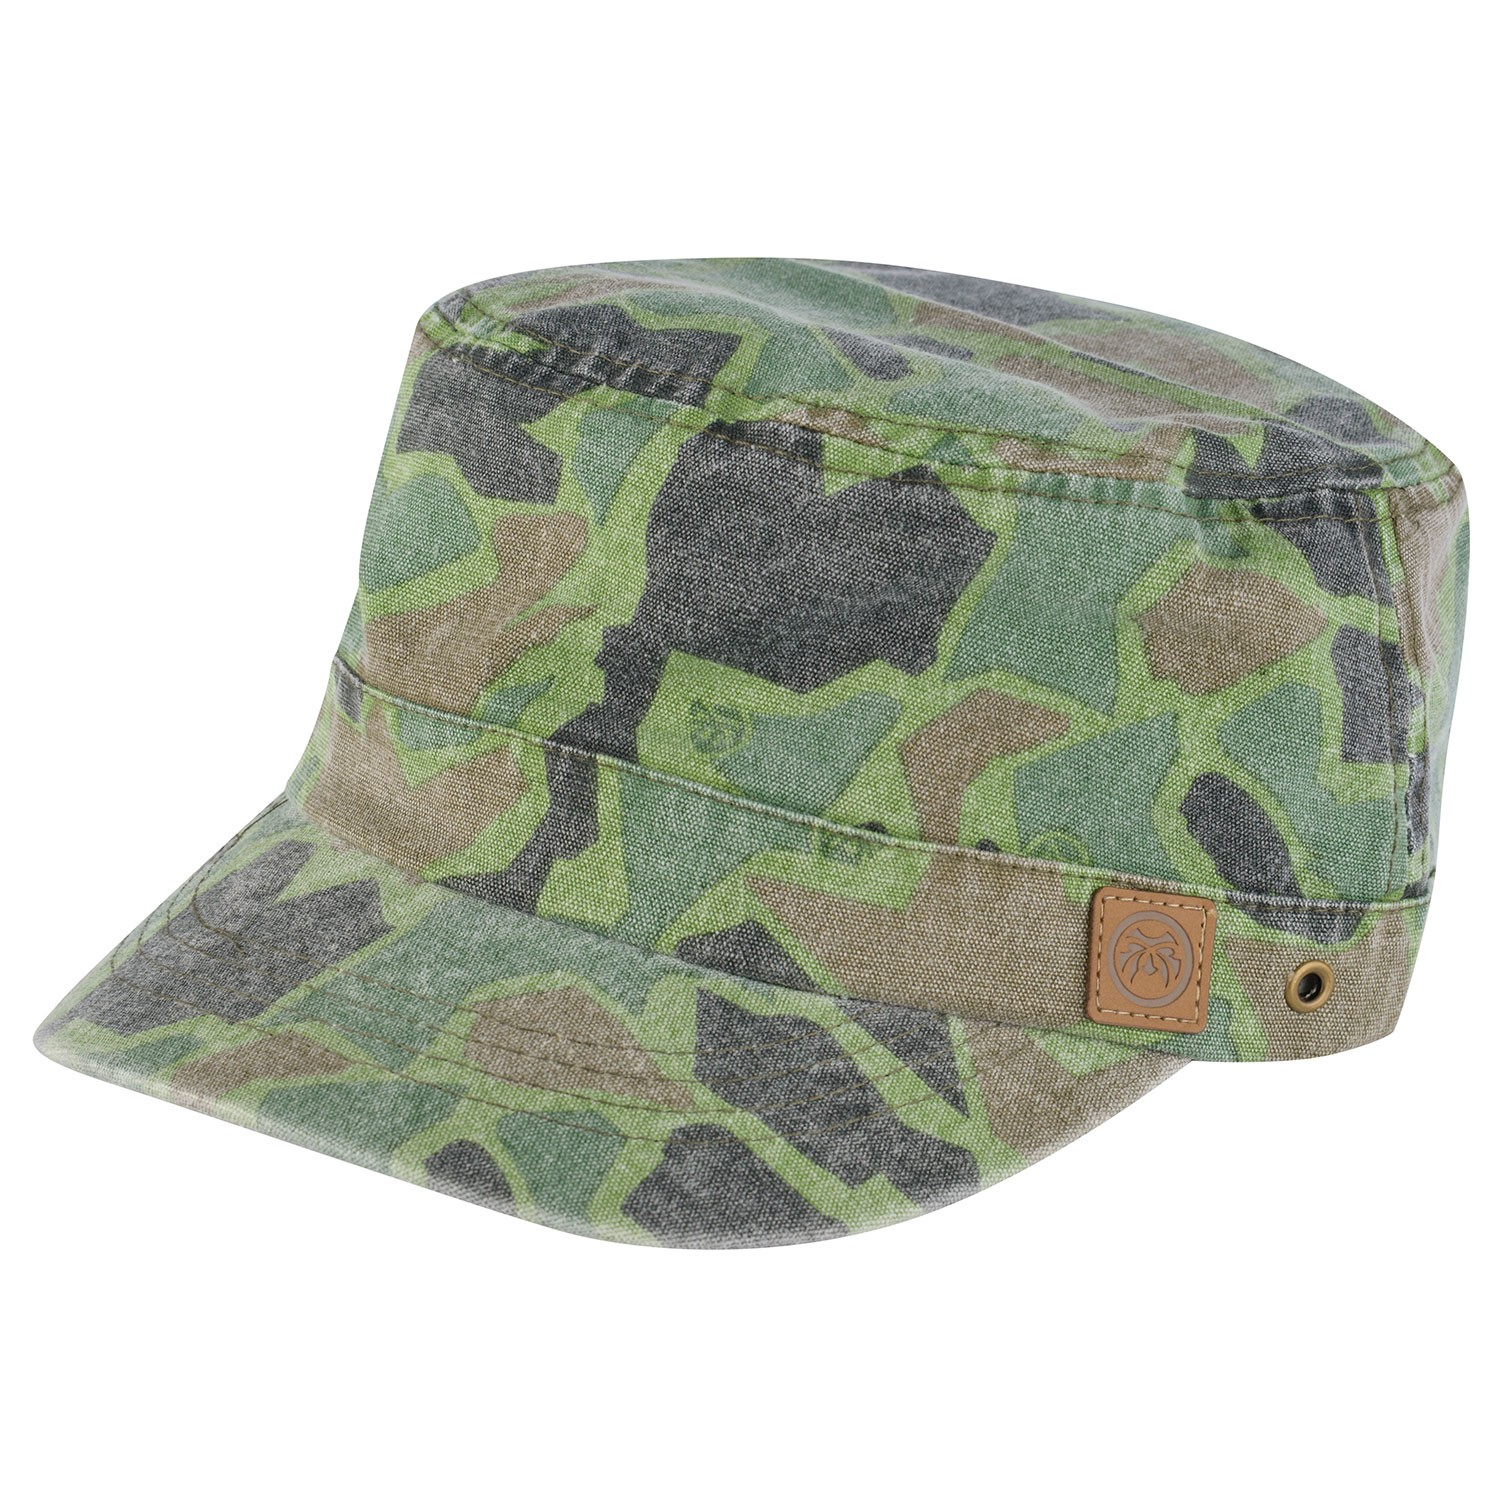 Camo Military Hat Cuba- Free Delivery Over £20 - Urban Beach cd31171c392b